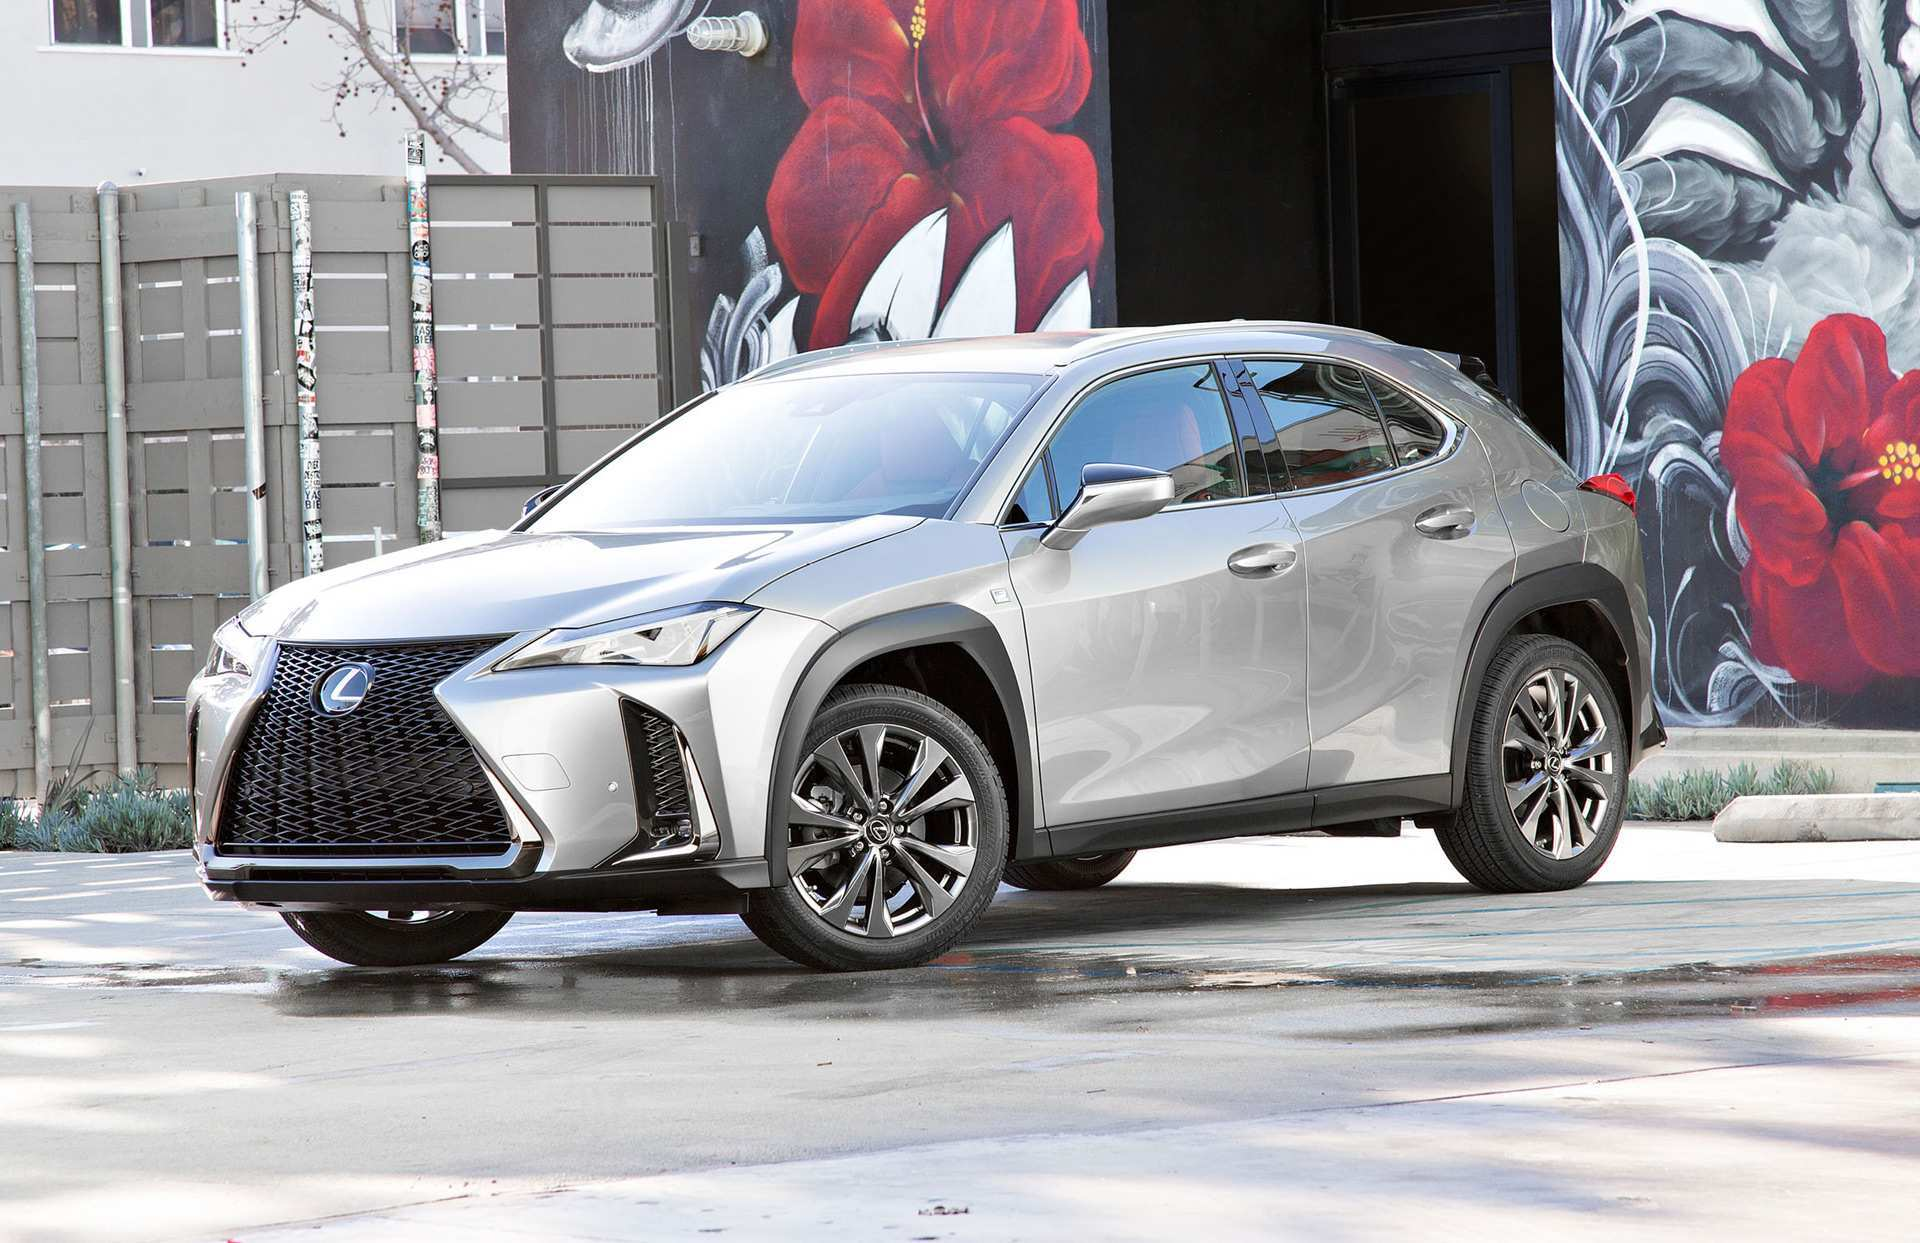 63 All New 2020 Lexus Ux Hybrid Redesign by 2020 Lexus Ux Hybrid